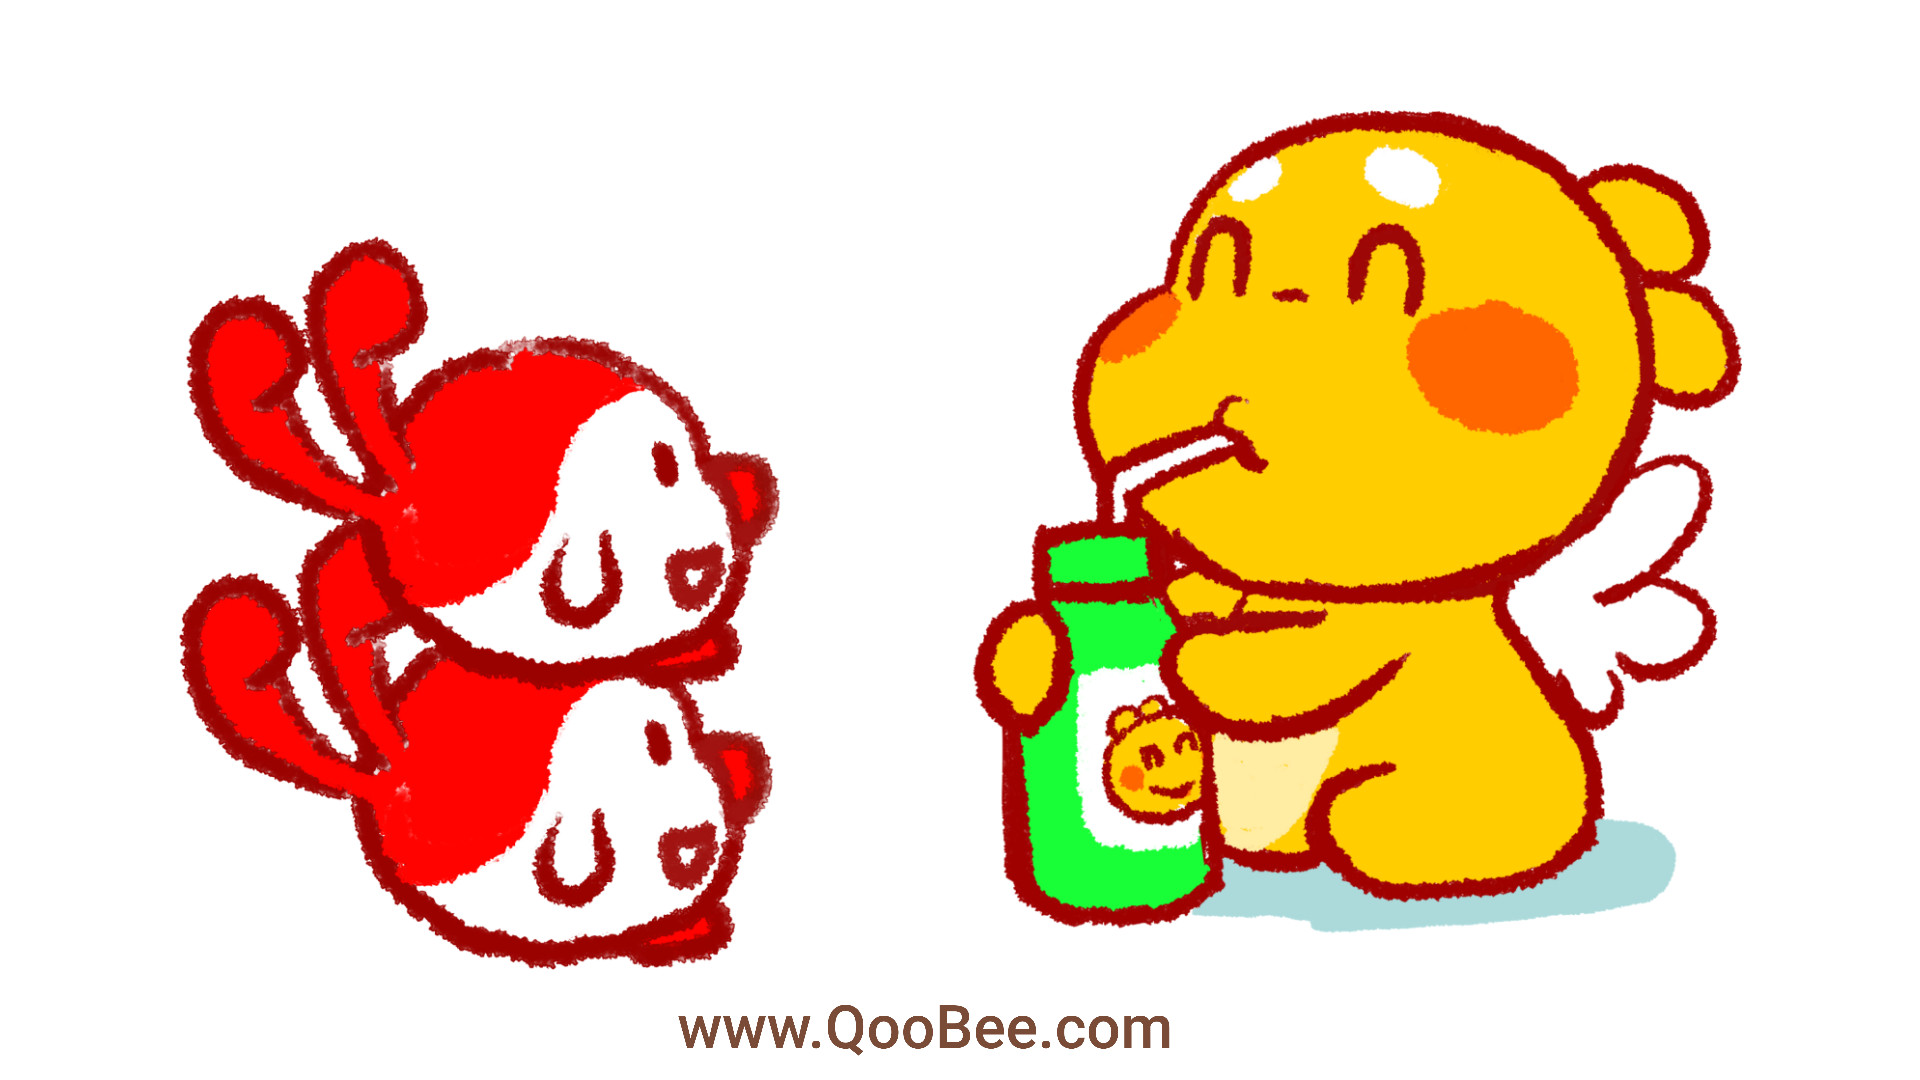 Qoobee is Enjoying a Super Cold Drink